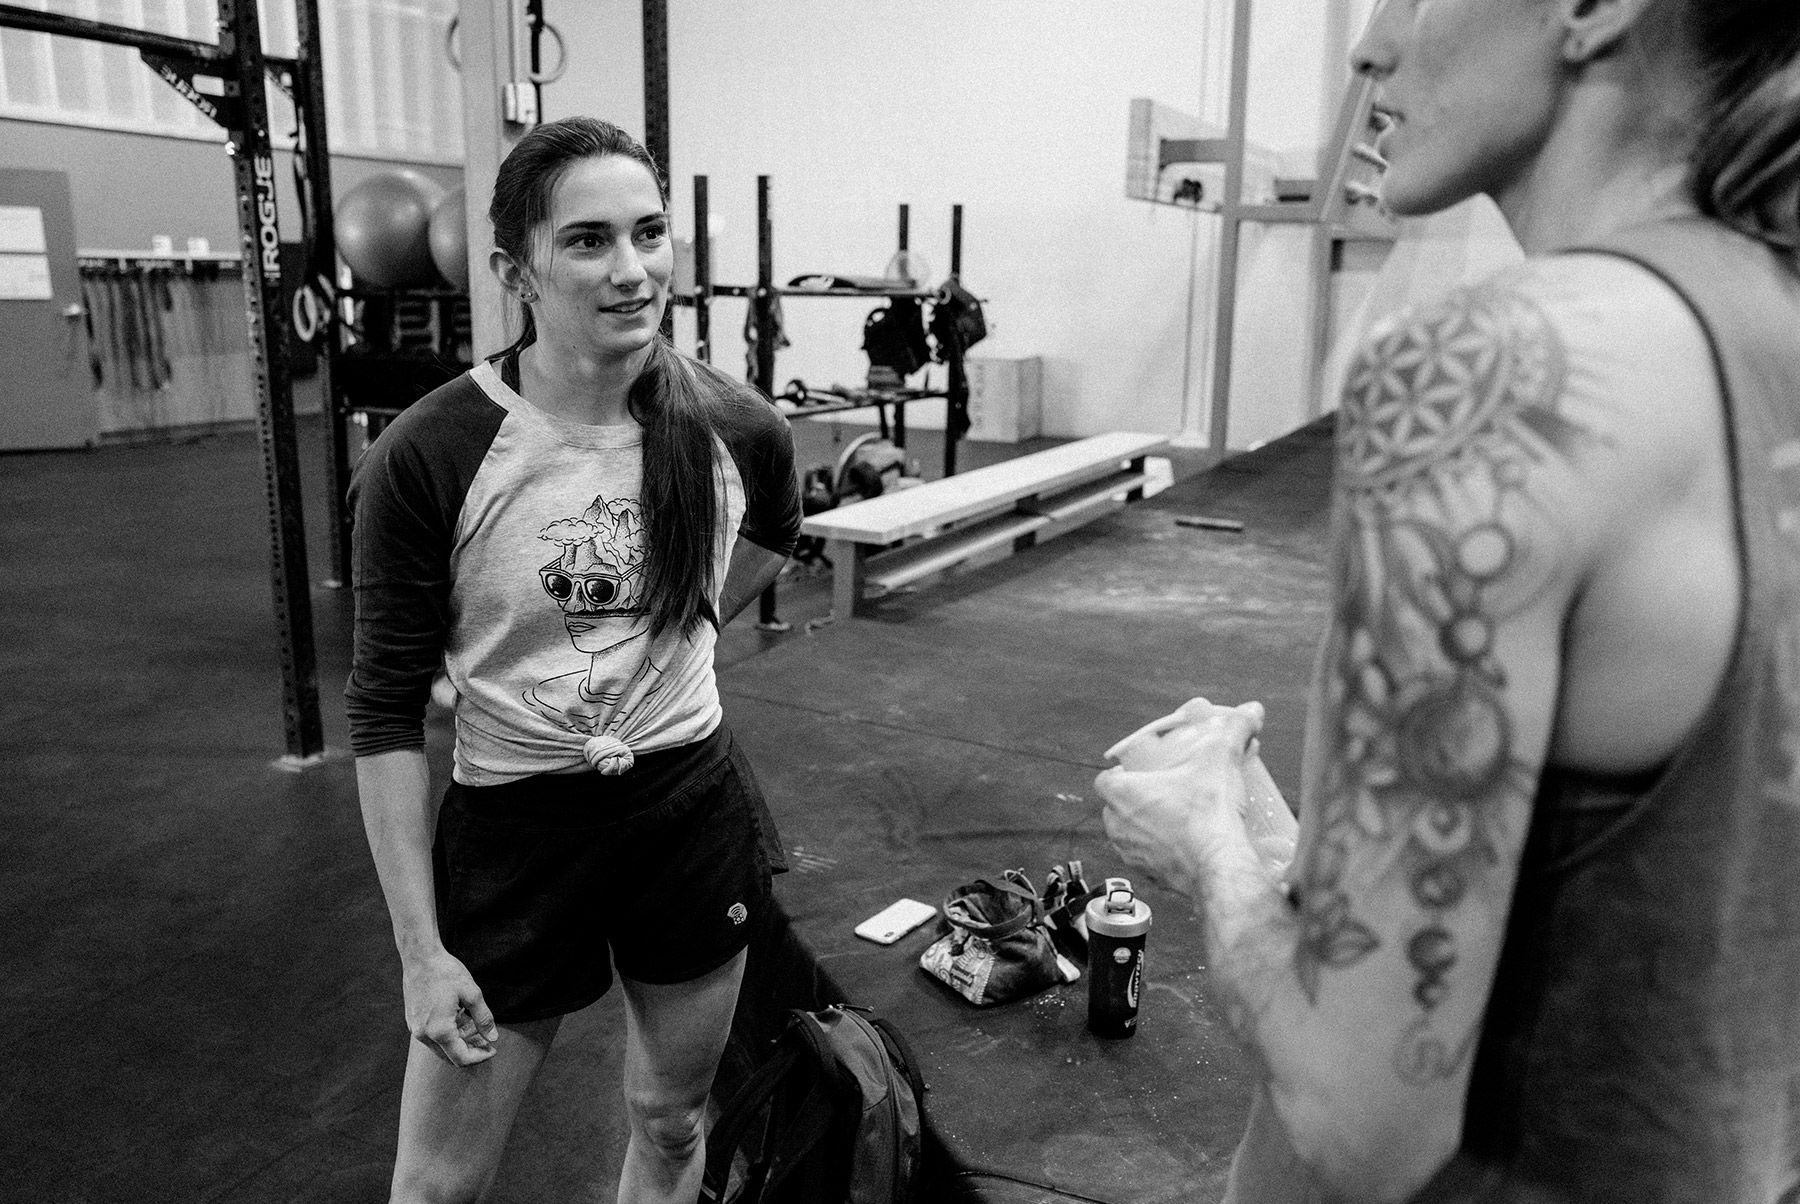 Black and white image of Kyra and Alex talking in between climbs at the gym